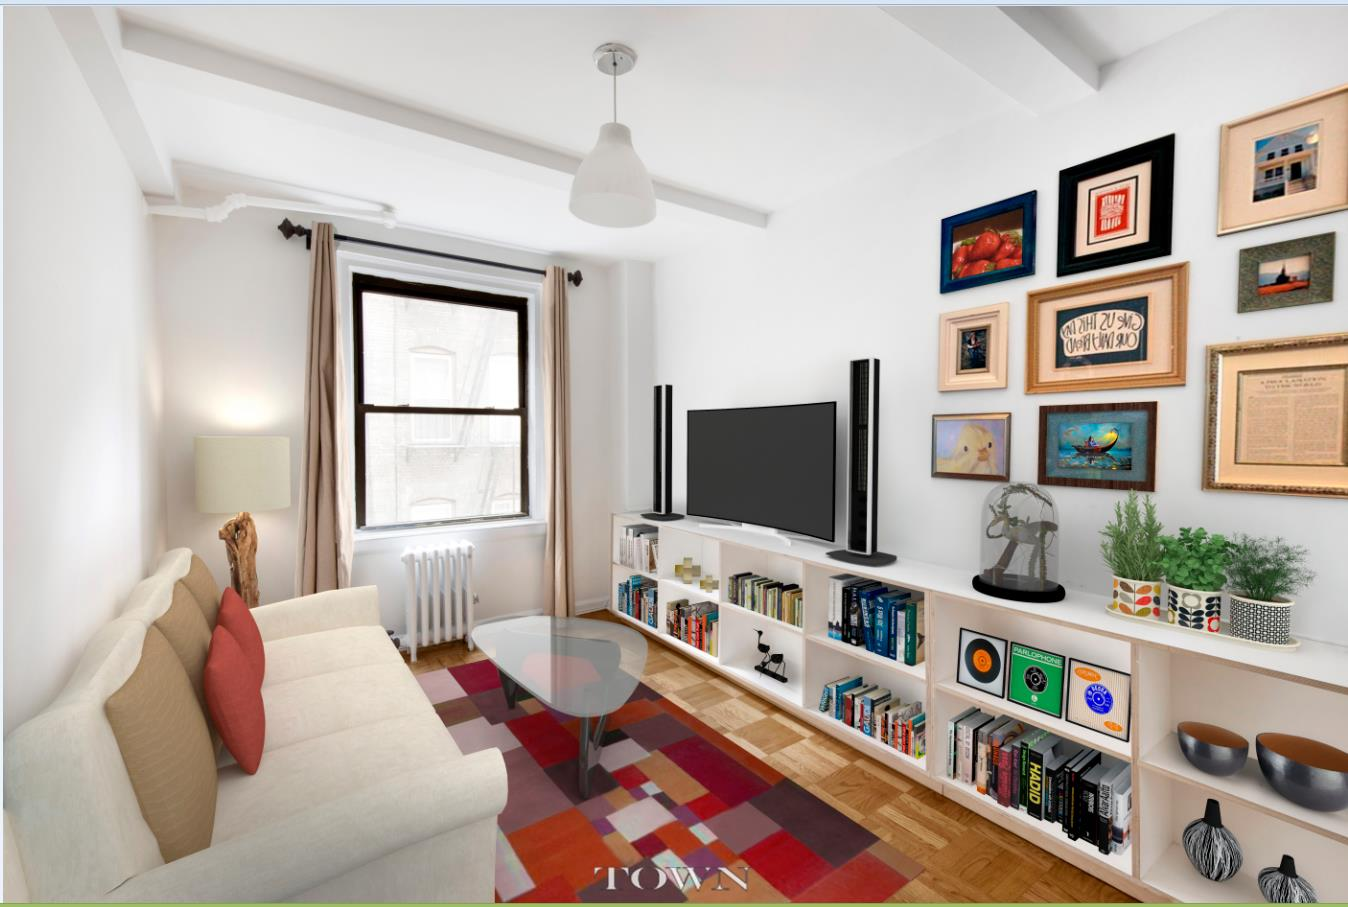 Co-op for Sale at 226-230 East 12th Street, #3-J 226-230 East 12th Street New York, New York 10003 United States